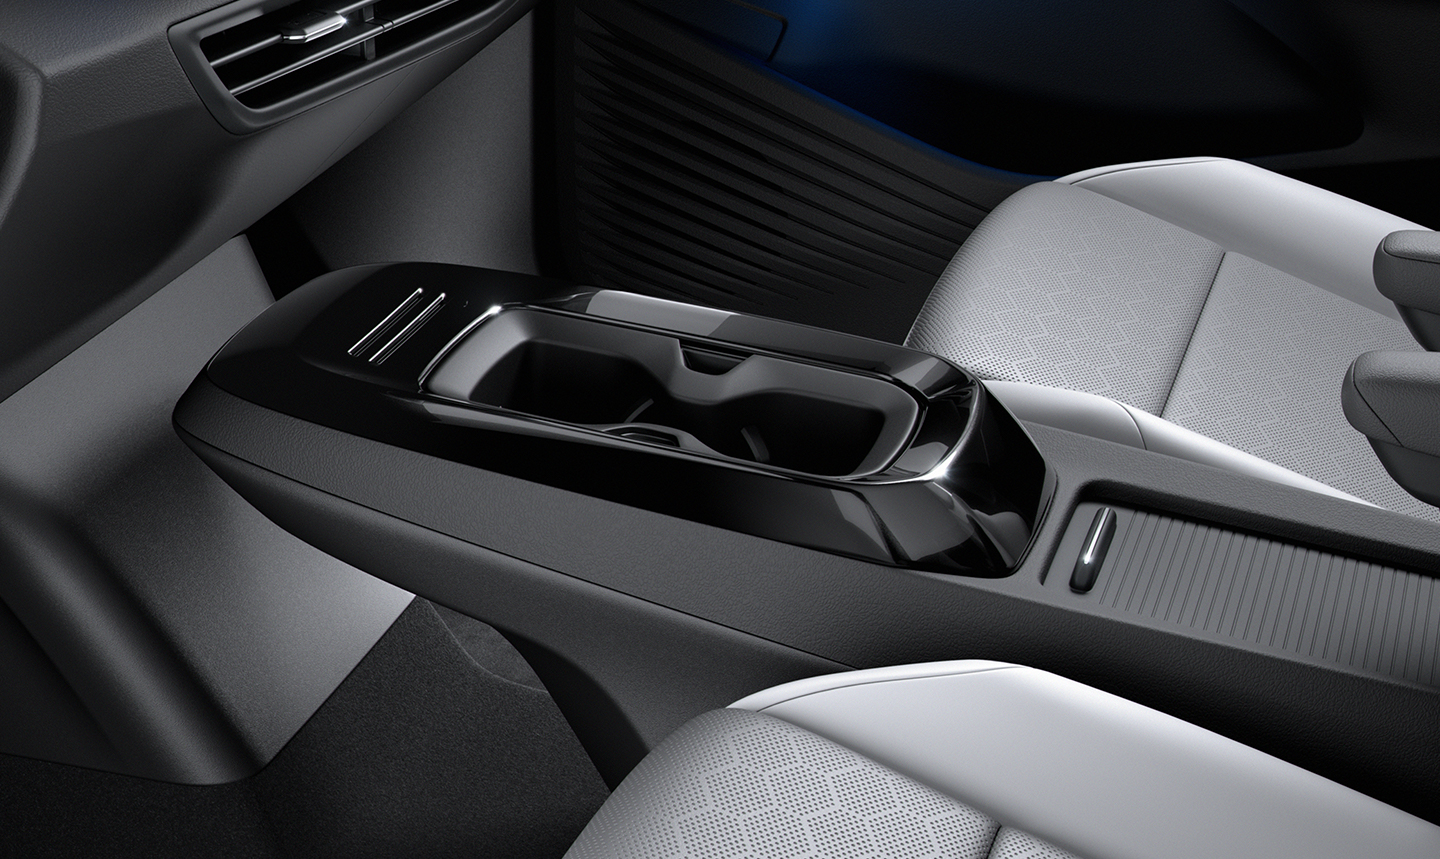 Center Cup Holders